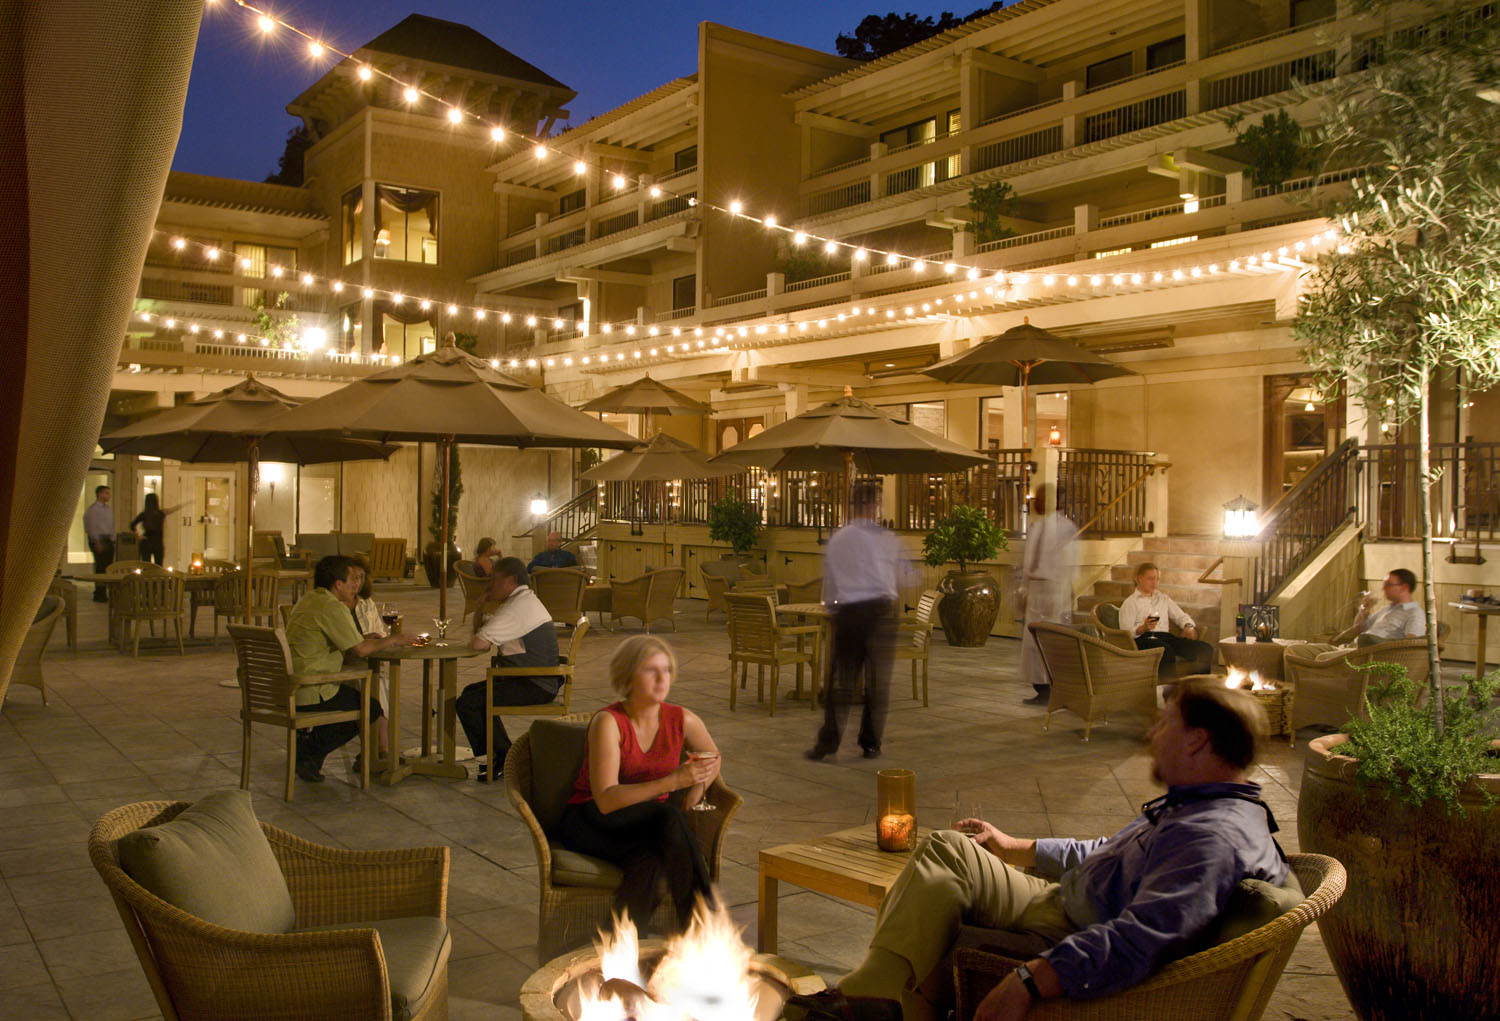 tollhouse-courtyard-with-firepits